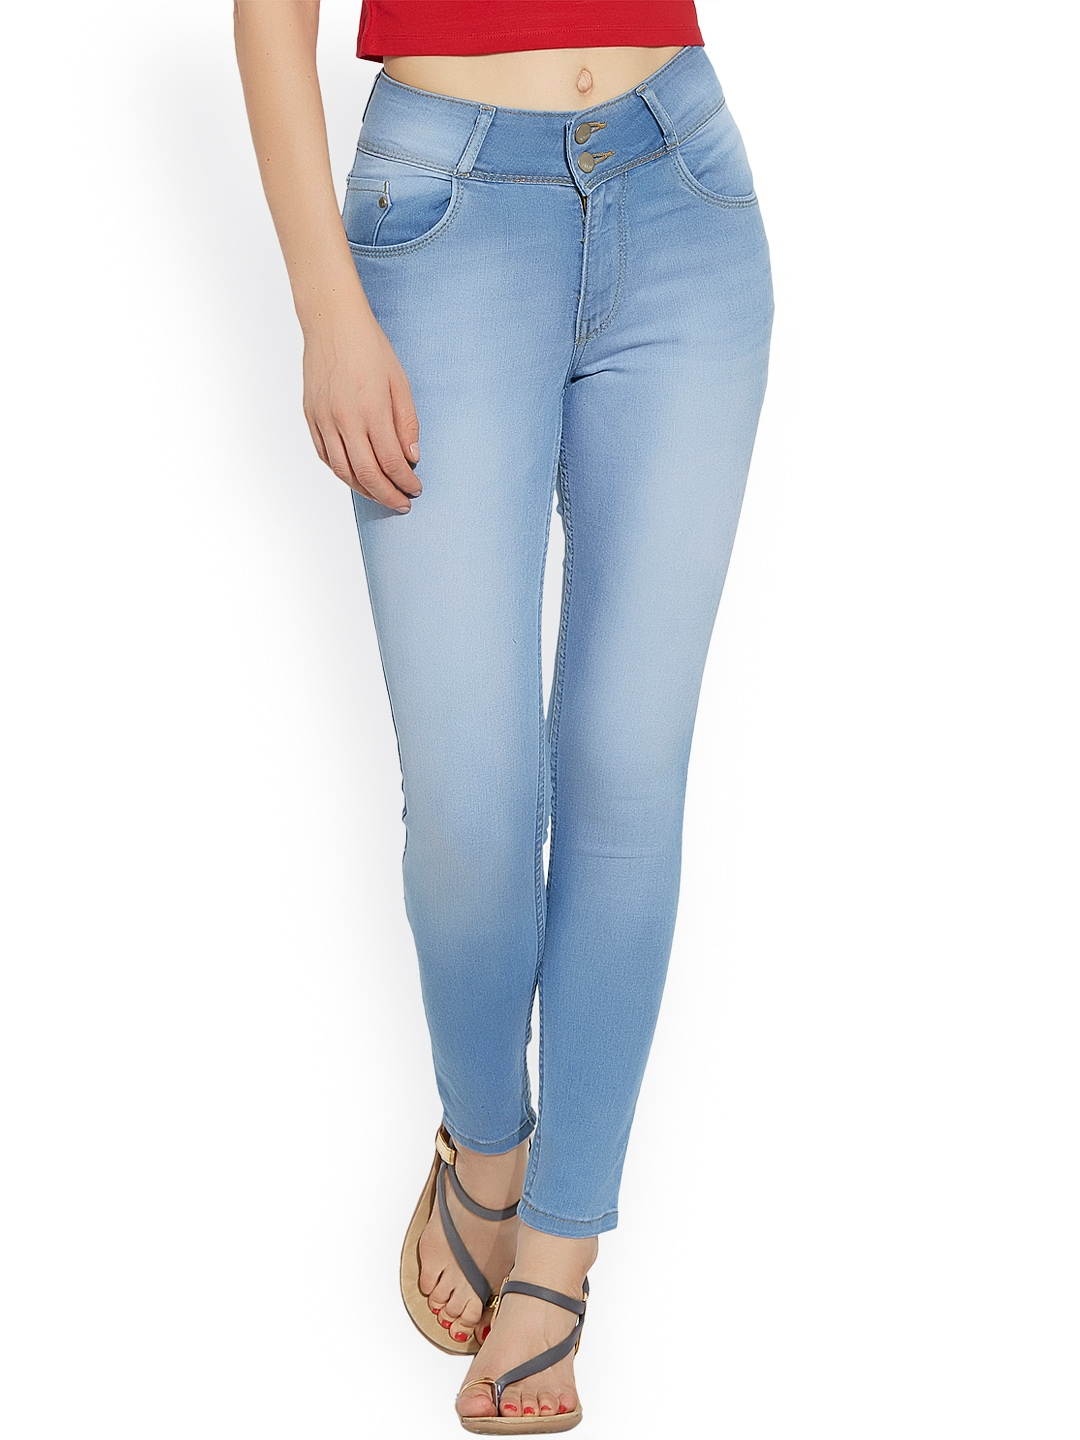 Kraus Jeans Women Blue Skinny Fit High-Rise Clean Look Jeans image